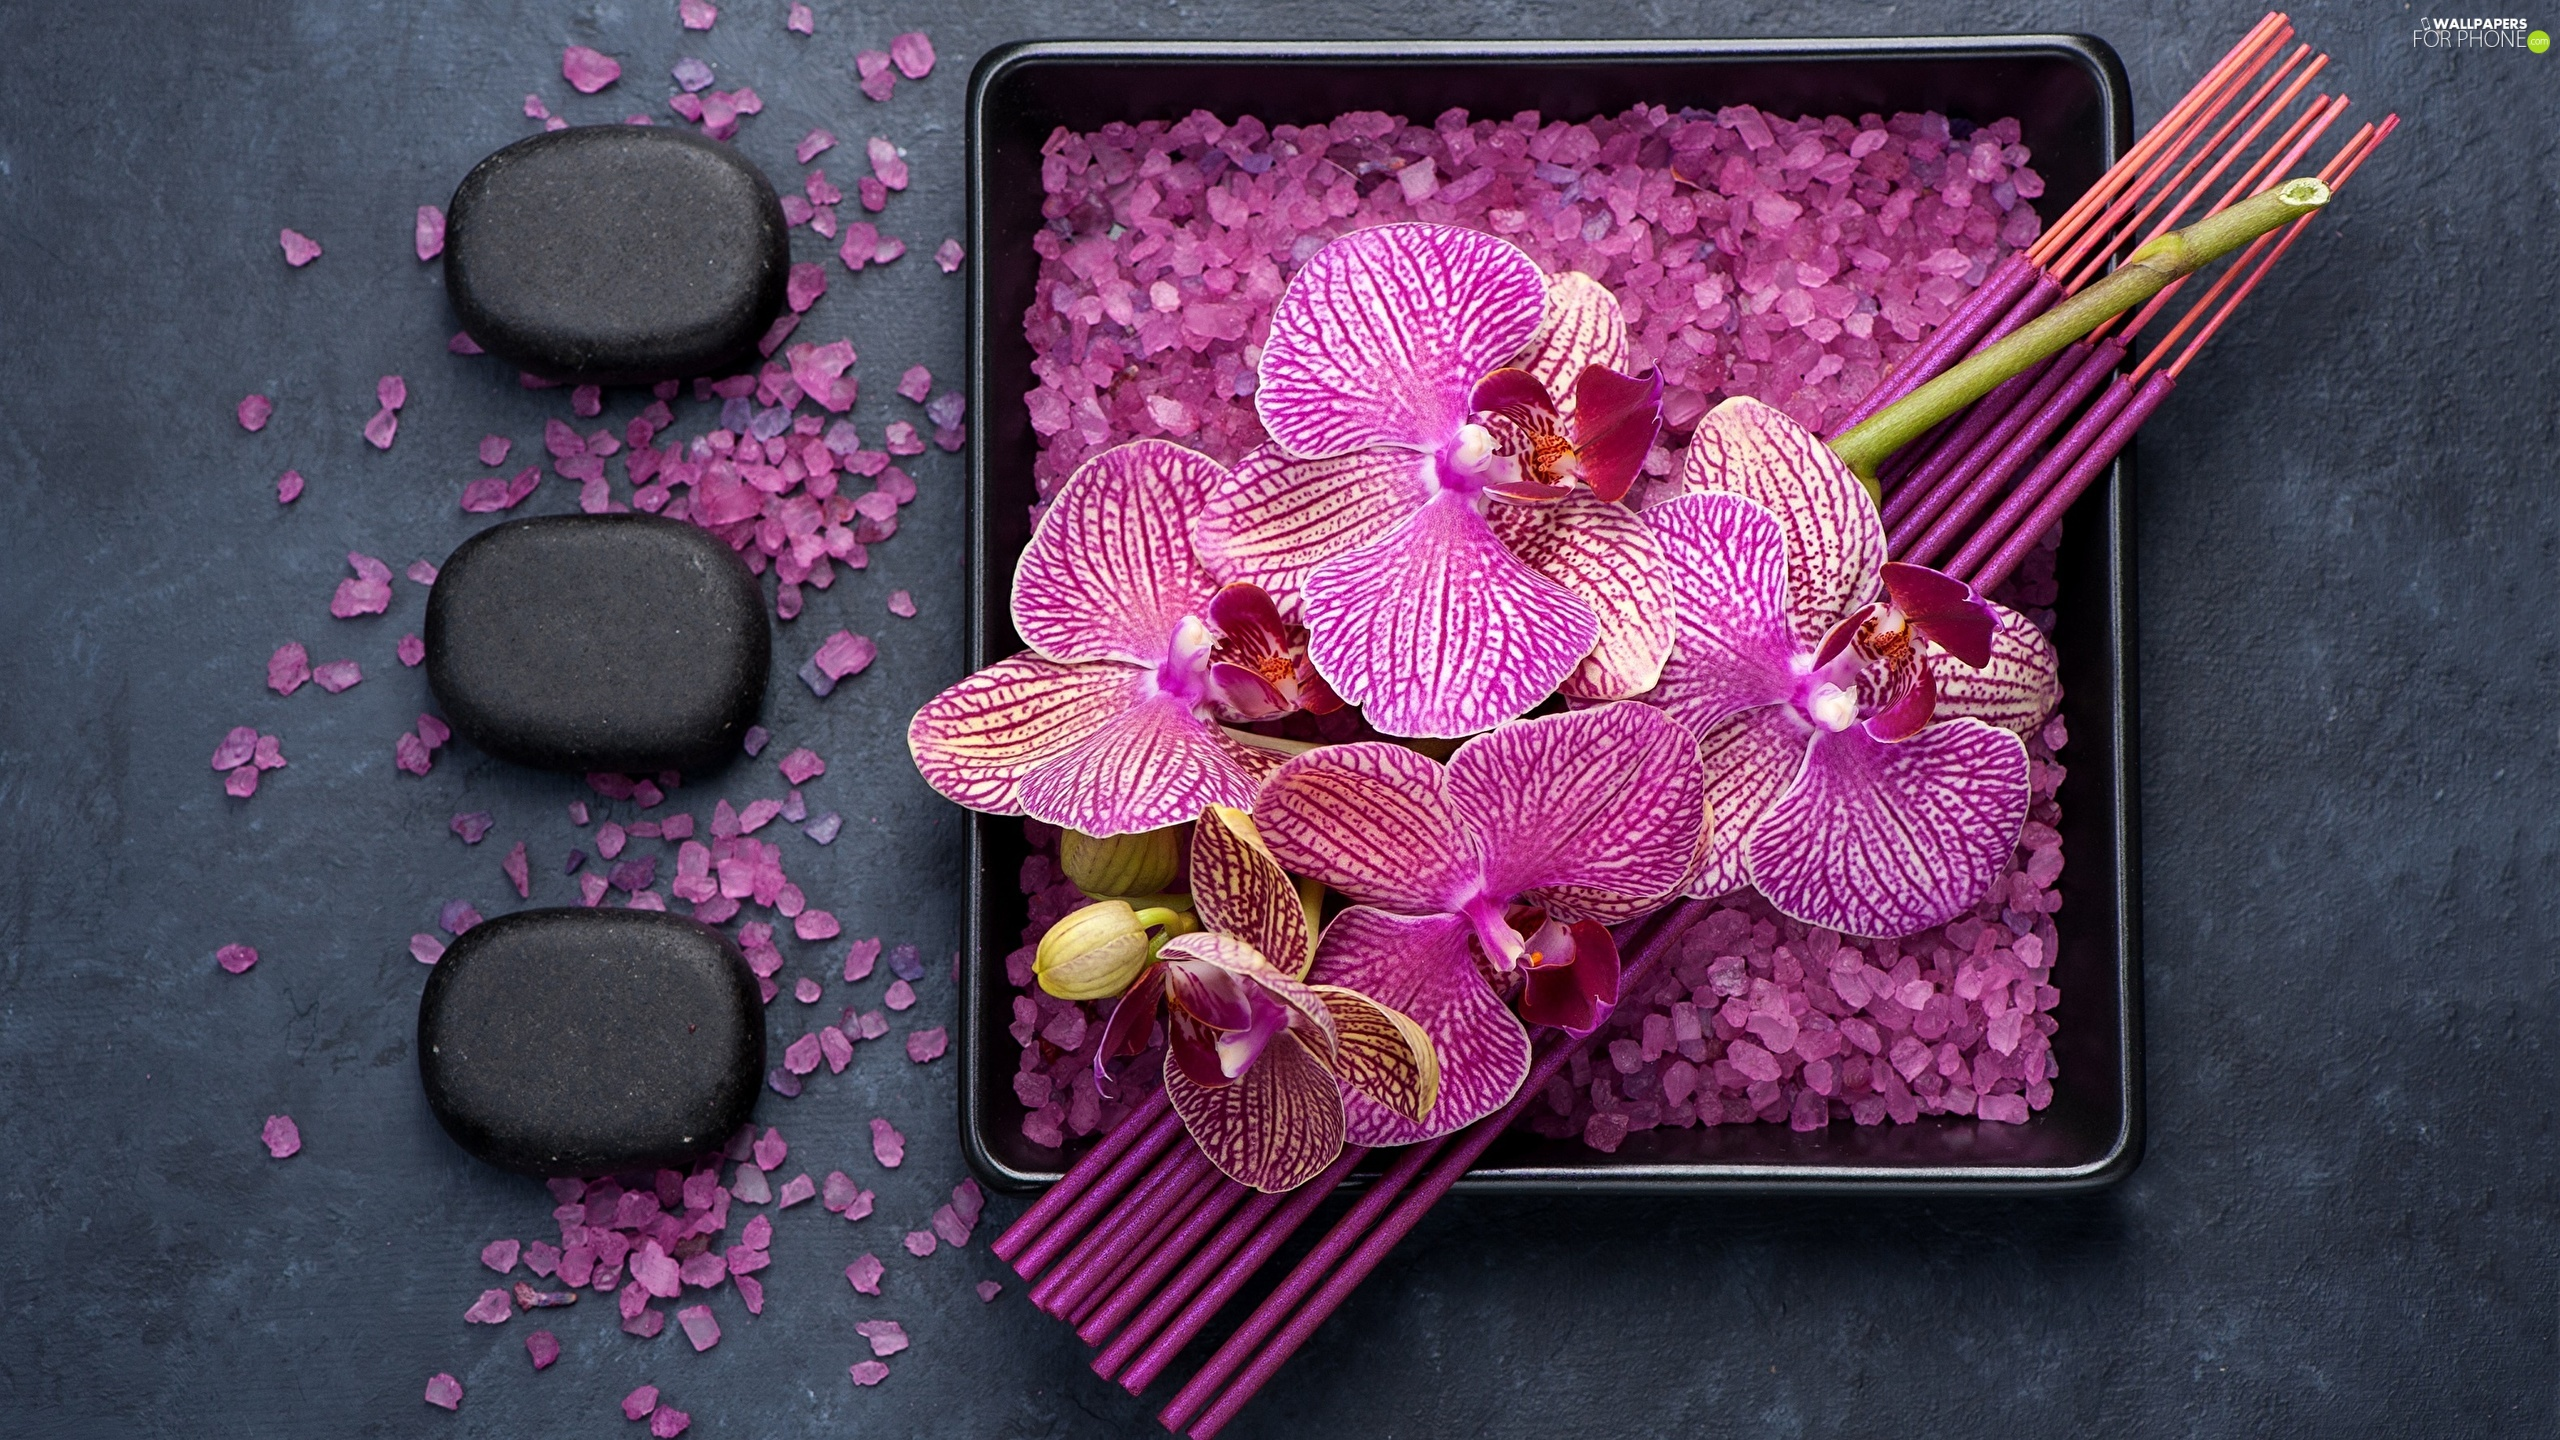 orchids, salt, Incense, crystals, Stones, Flowers, Spa, Tray